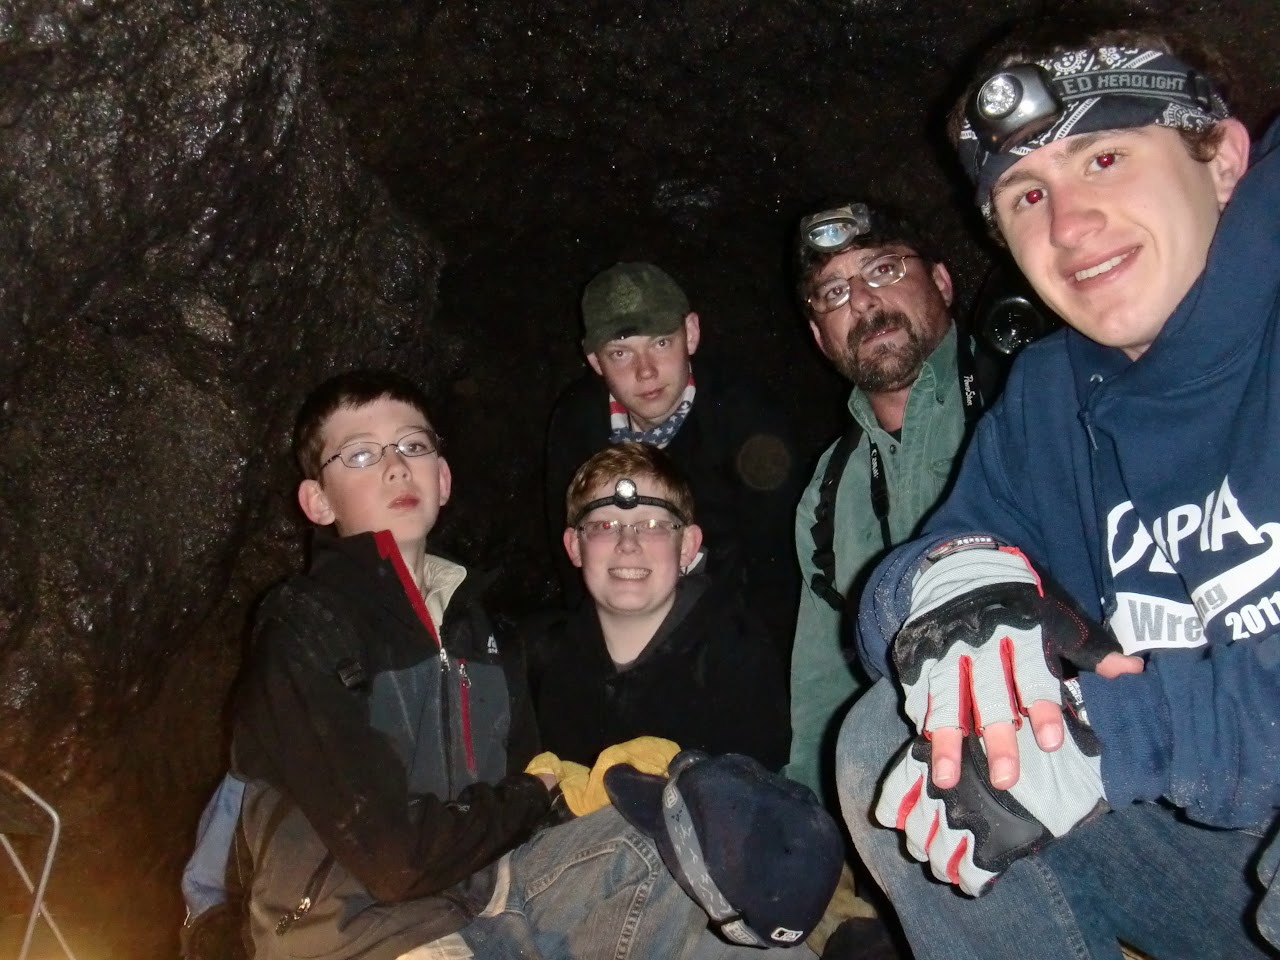 At the end of Lower Cave